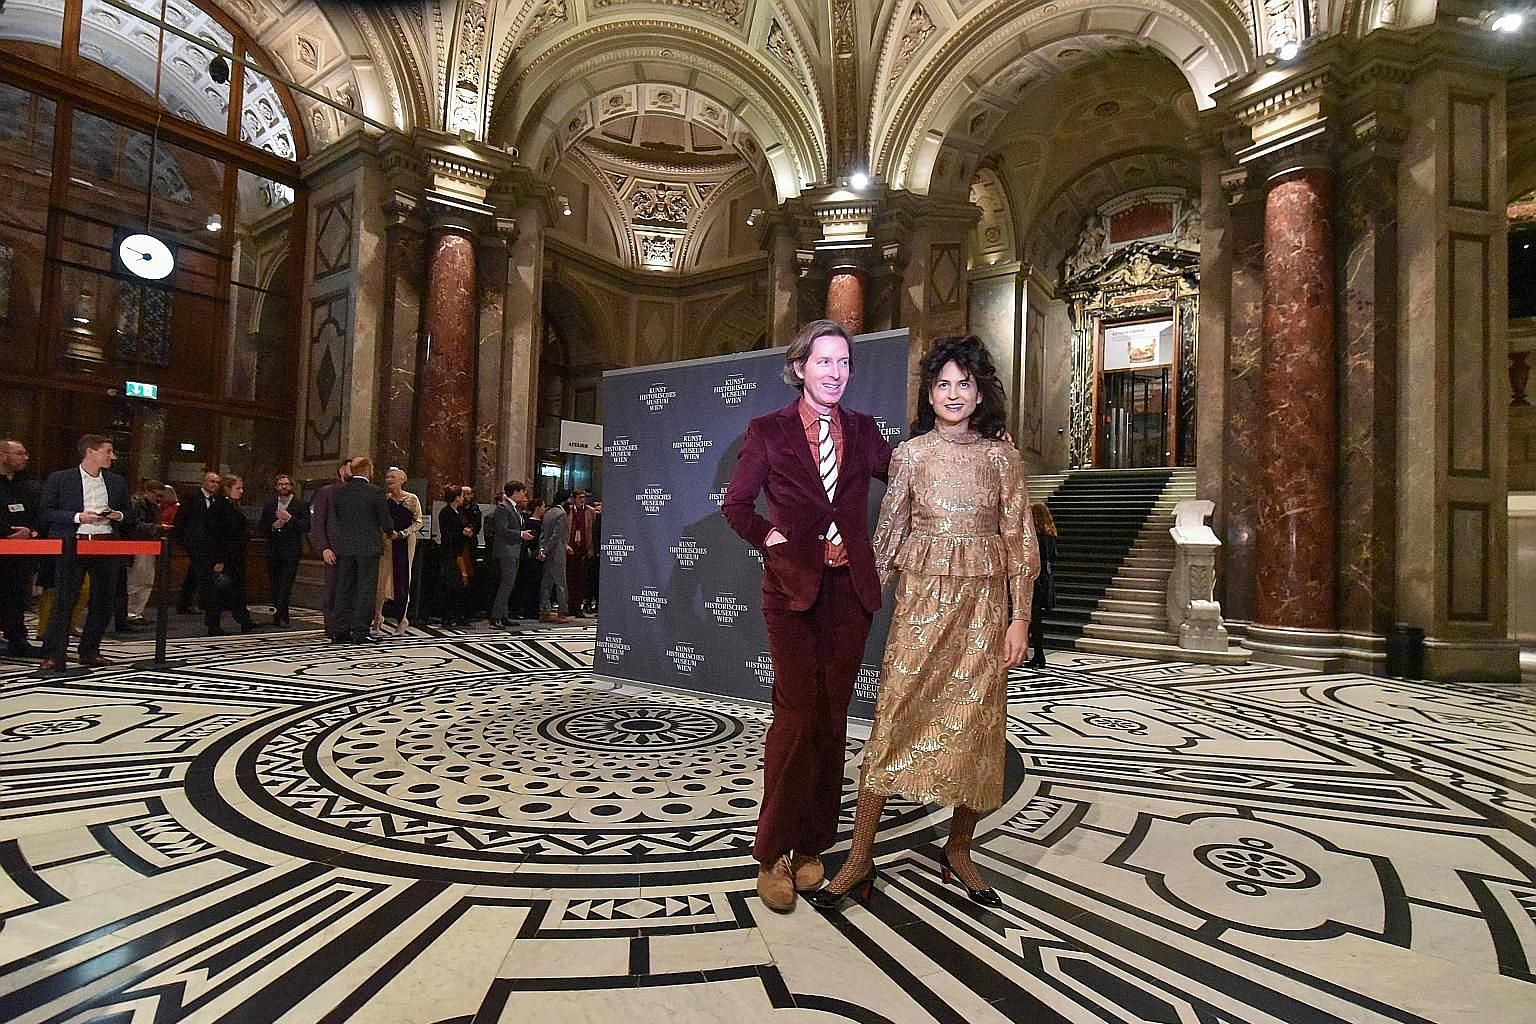 The exhibit of Coffin of a Spitzmaus (Shrew, far left) and that of Radiated Tortoise and Hermann's Tortoise (left). American film-maker Wes Anderson and his partner, illustrator Juman Malouf, arriving for the opening of their exhibition, Spitzmaus Mu